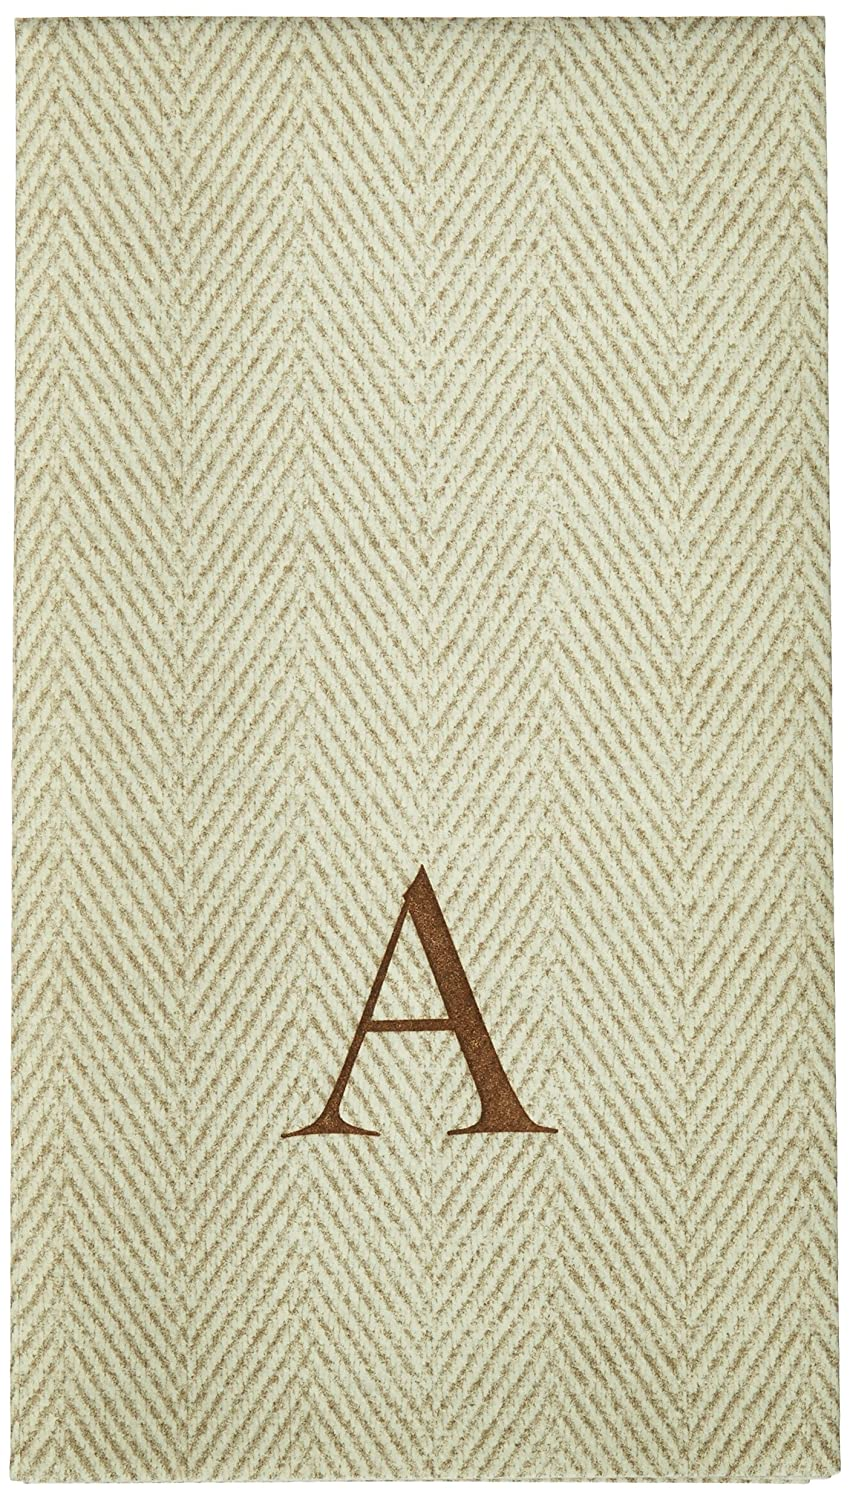 Entertaining with Caspari Jute Herringbone Paper Linen Guest Towels, Monogram Initial S, 24-Pack Caspari Inc. 9760GG.S